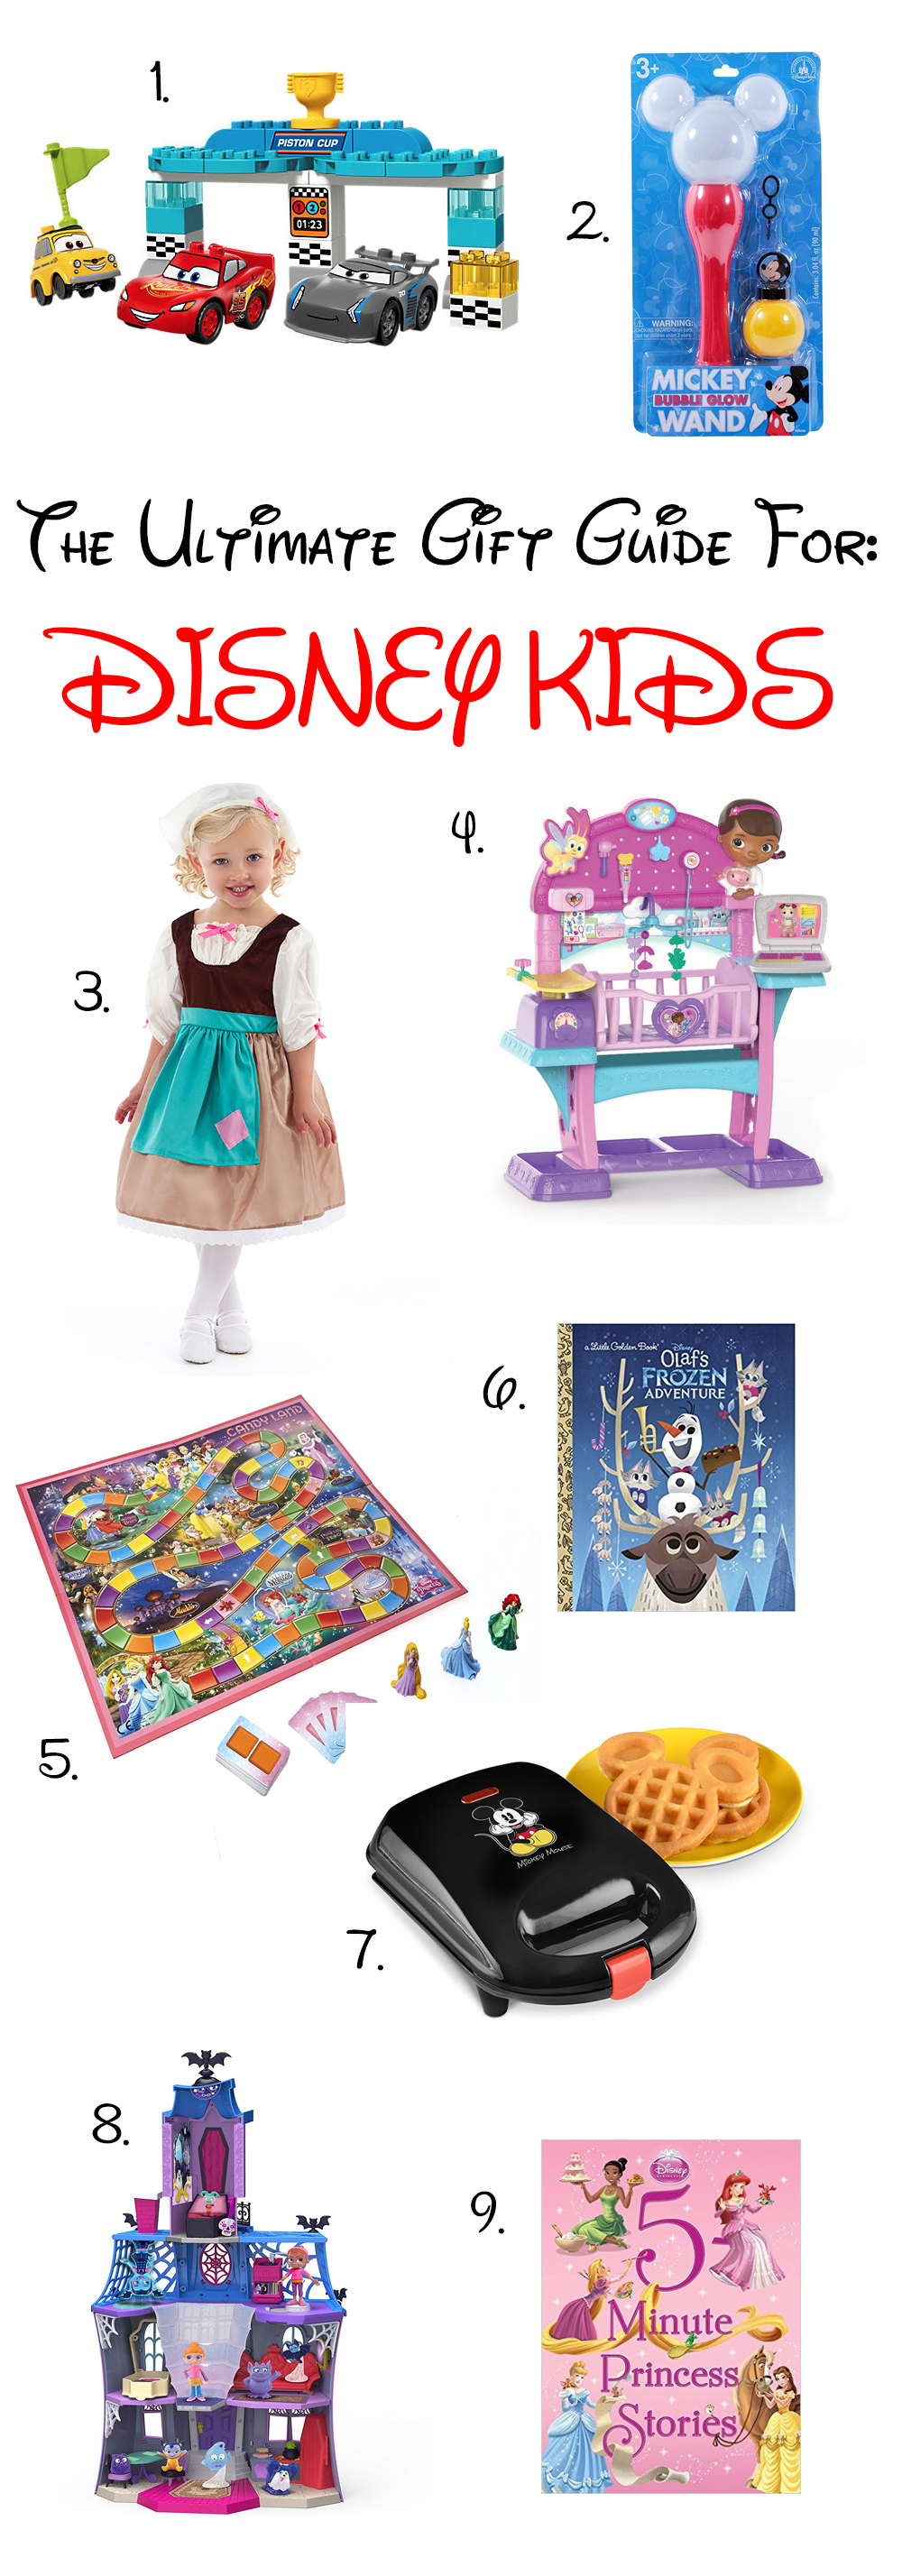 Looking for Disney Gifts for your favorite preschooler? This gift guide has some great options for under $70!